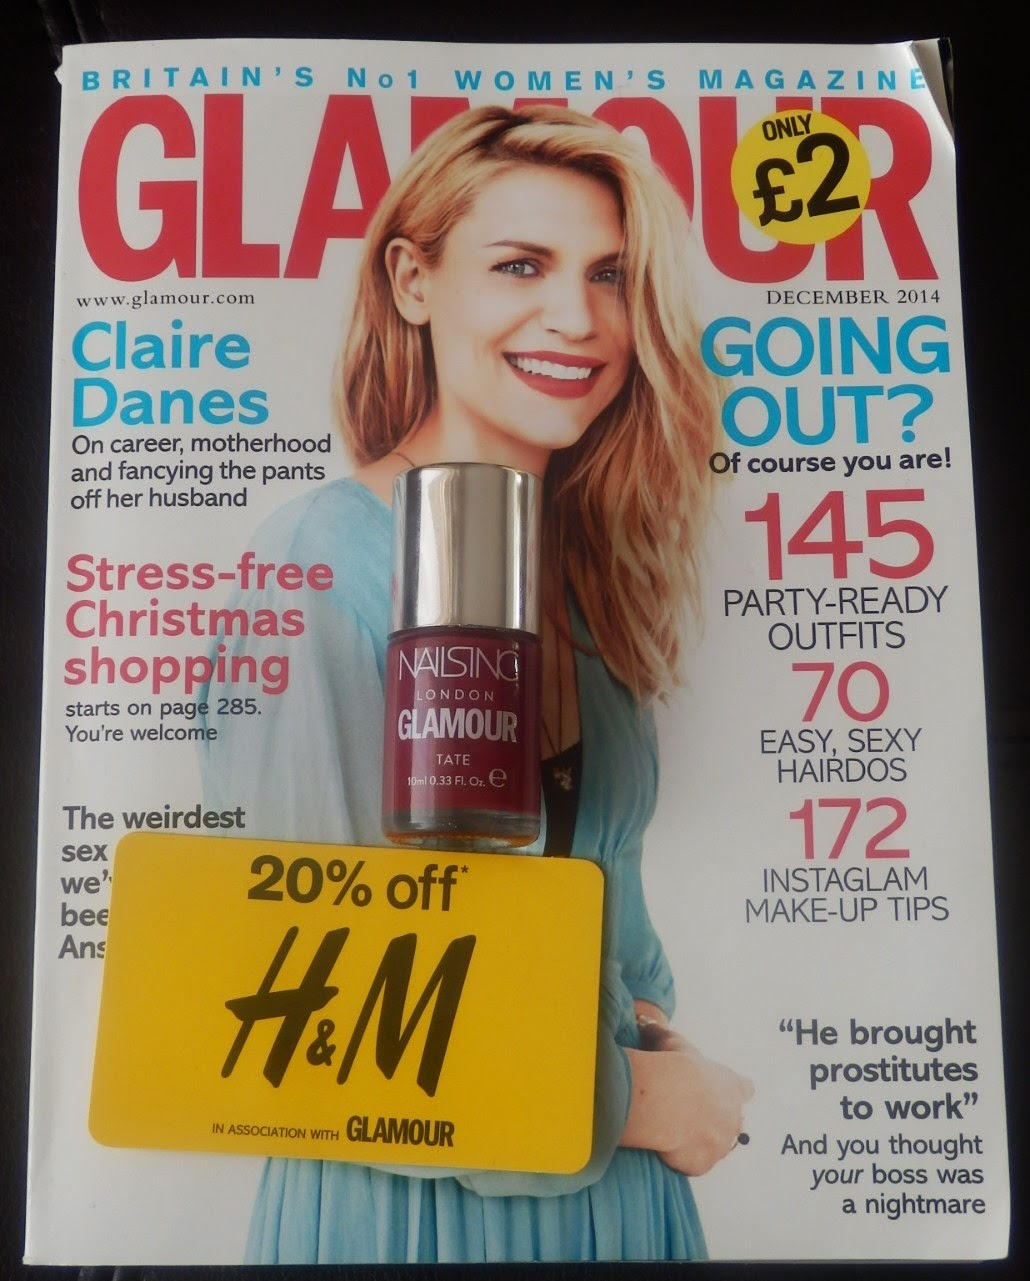 Glamour Magazine Nails Inc & The Body Shop Freebies